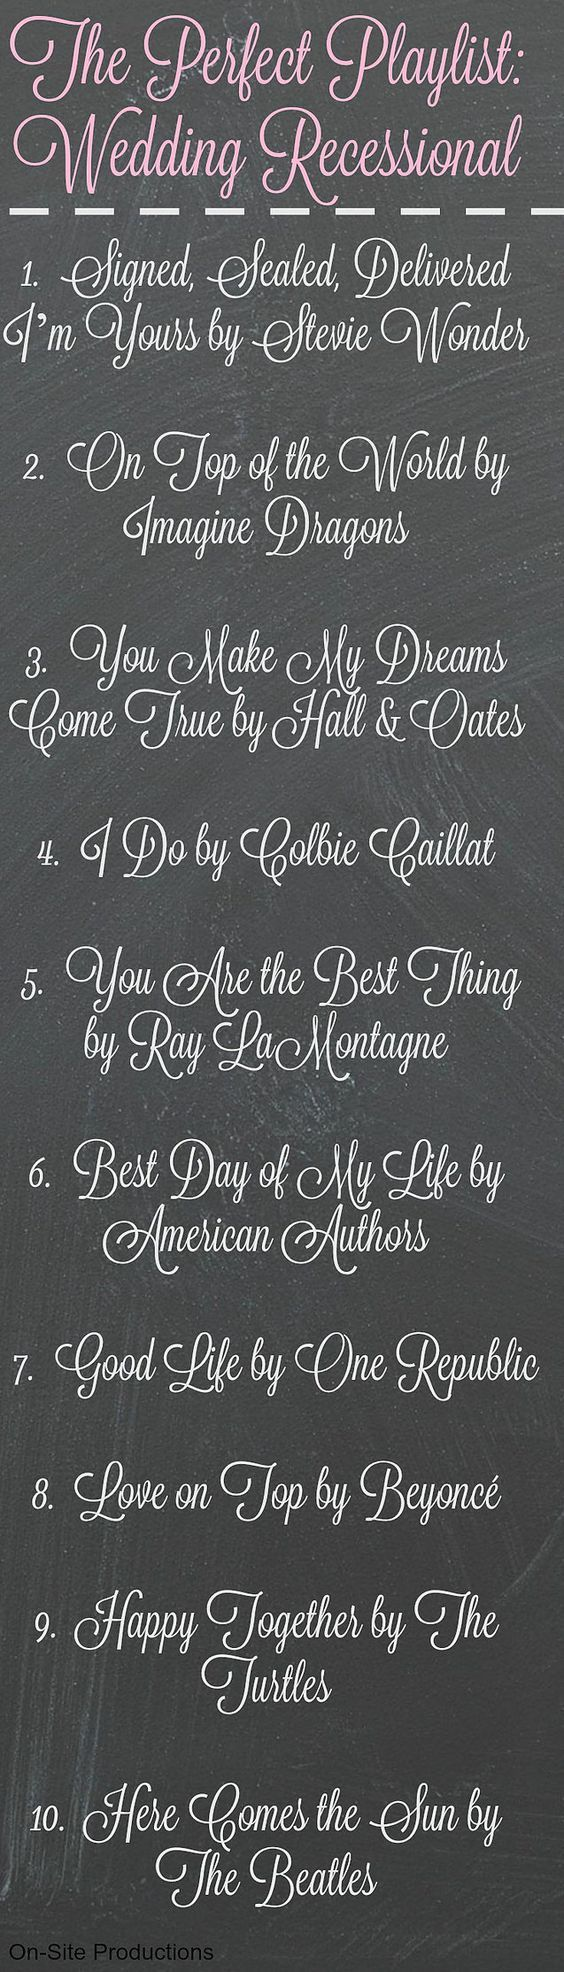 Best 20 Wedding Recessional Ideas On Pinterest